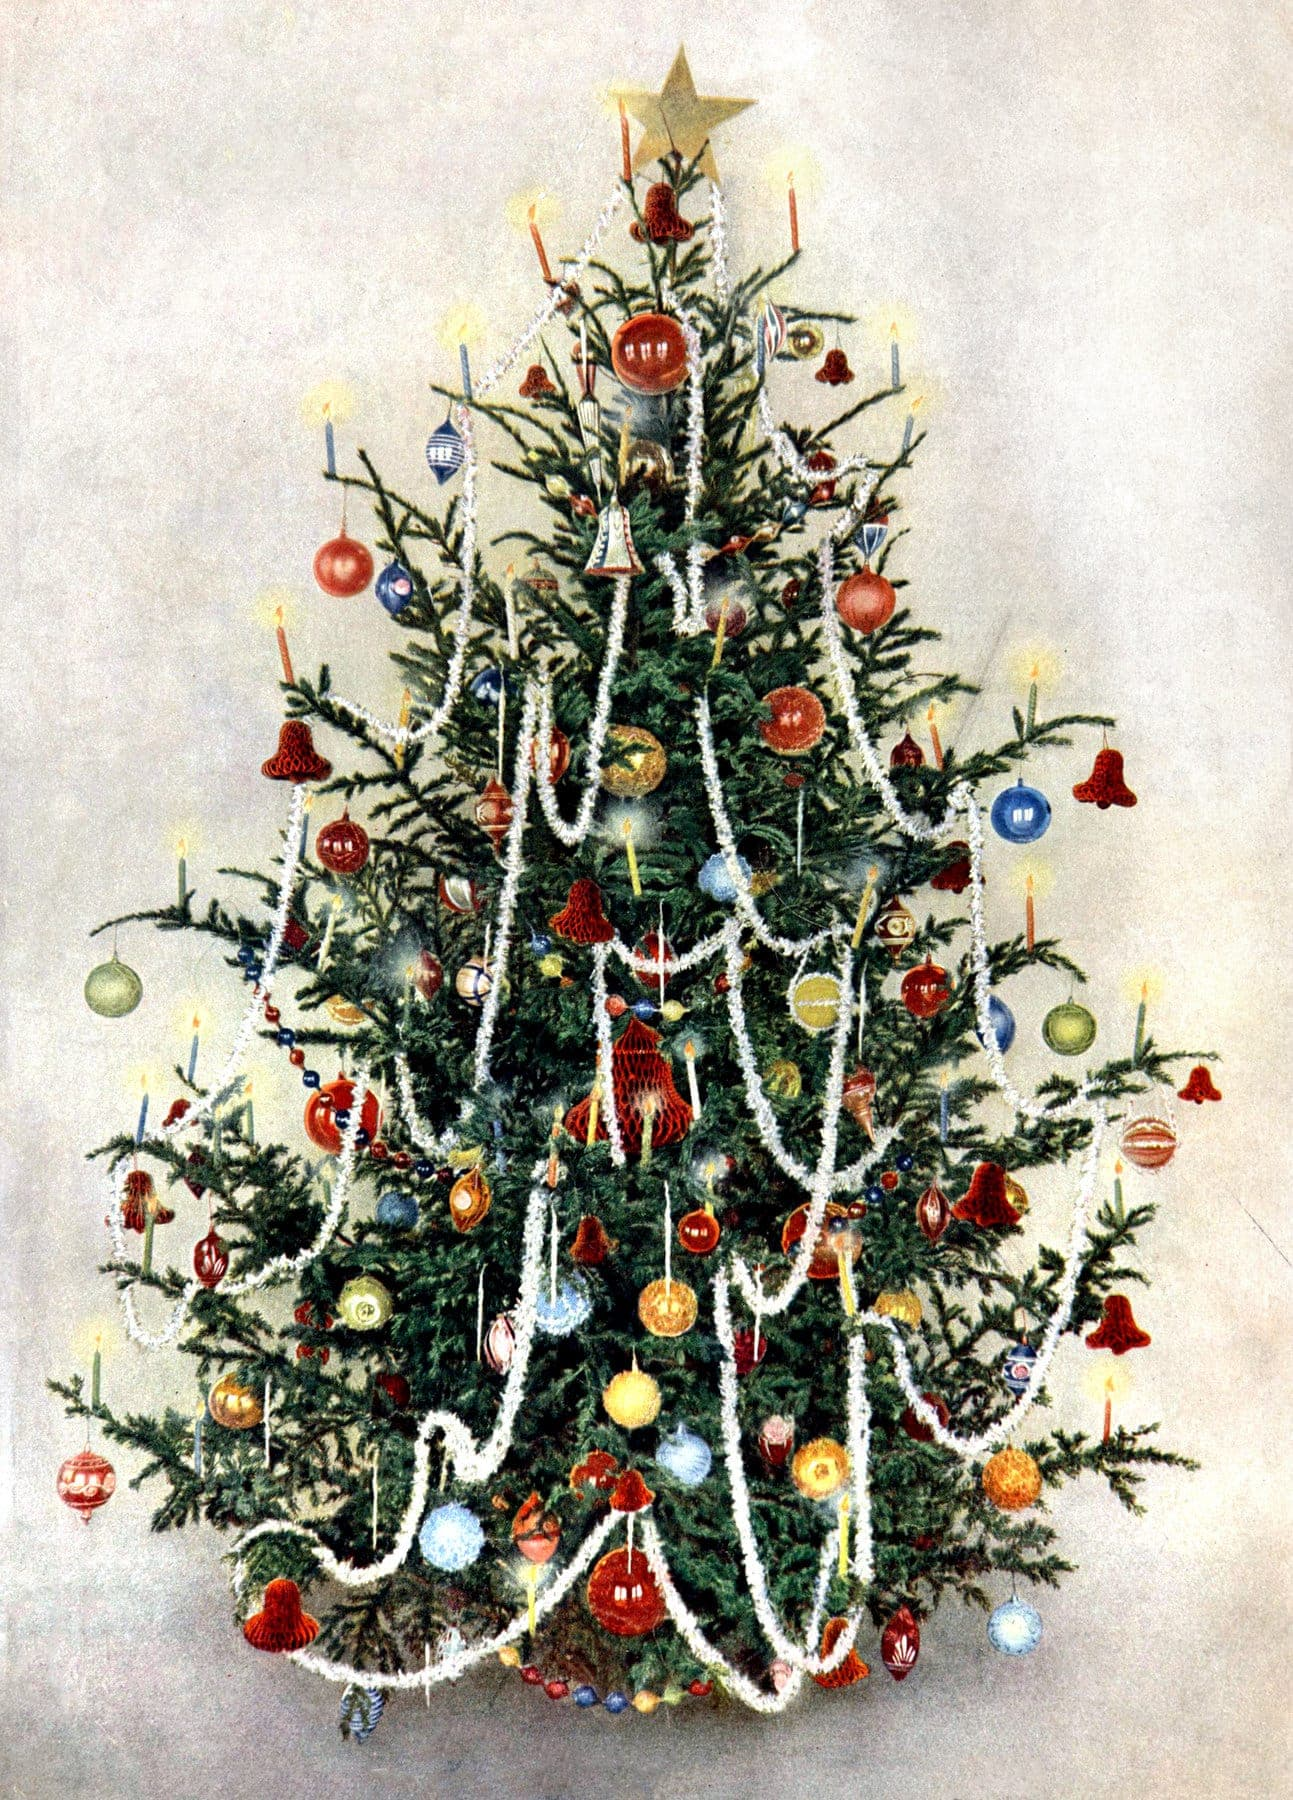 Old,fashioned Christmas tree \u0026 classic decorations for the